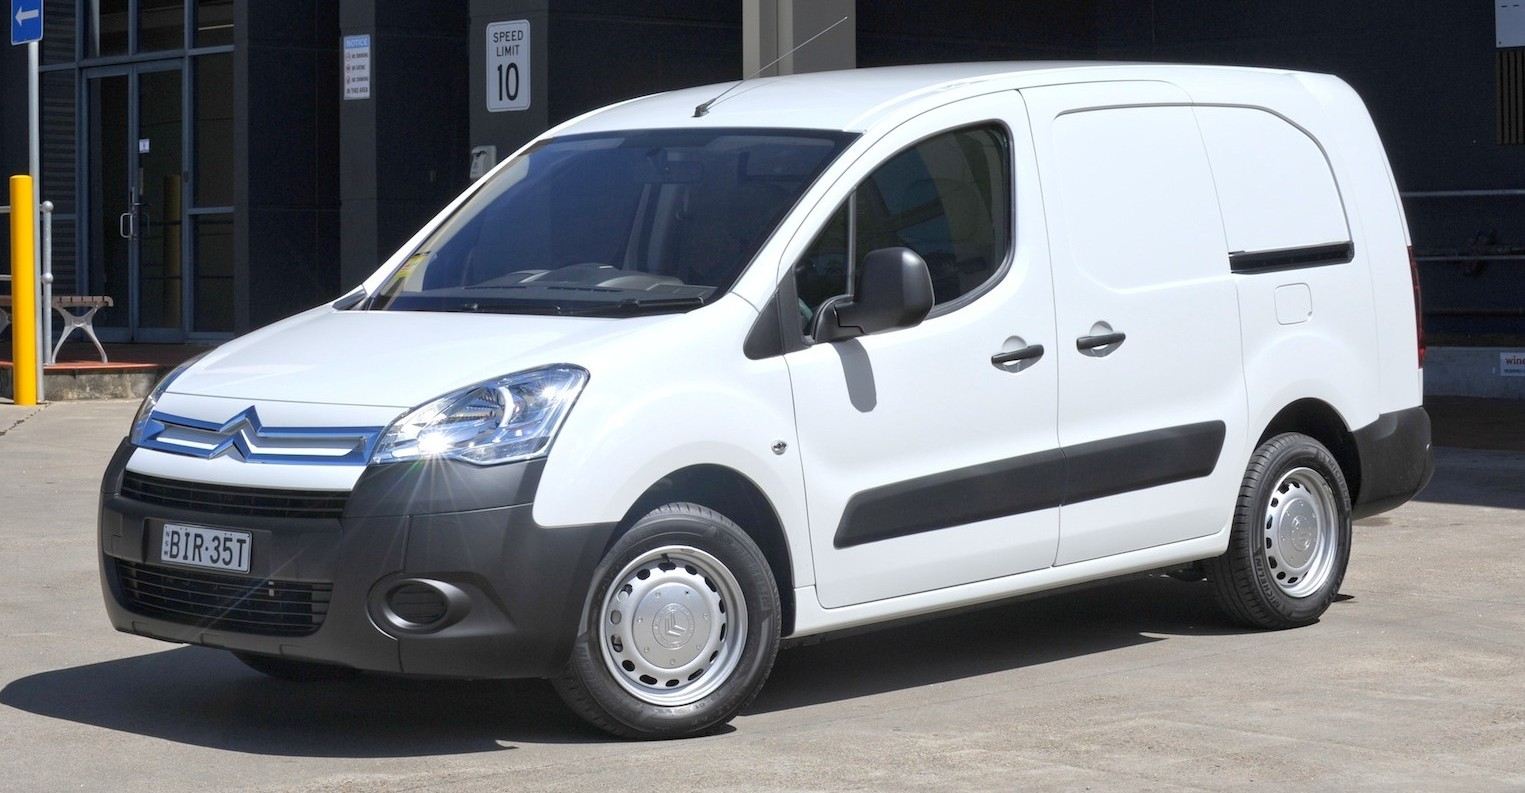 The Citroen Berlingo is one of just a handful of compact vans available in